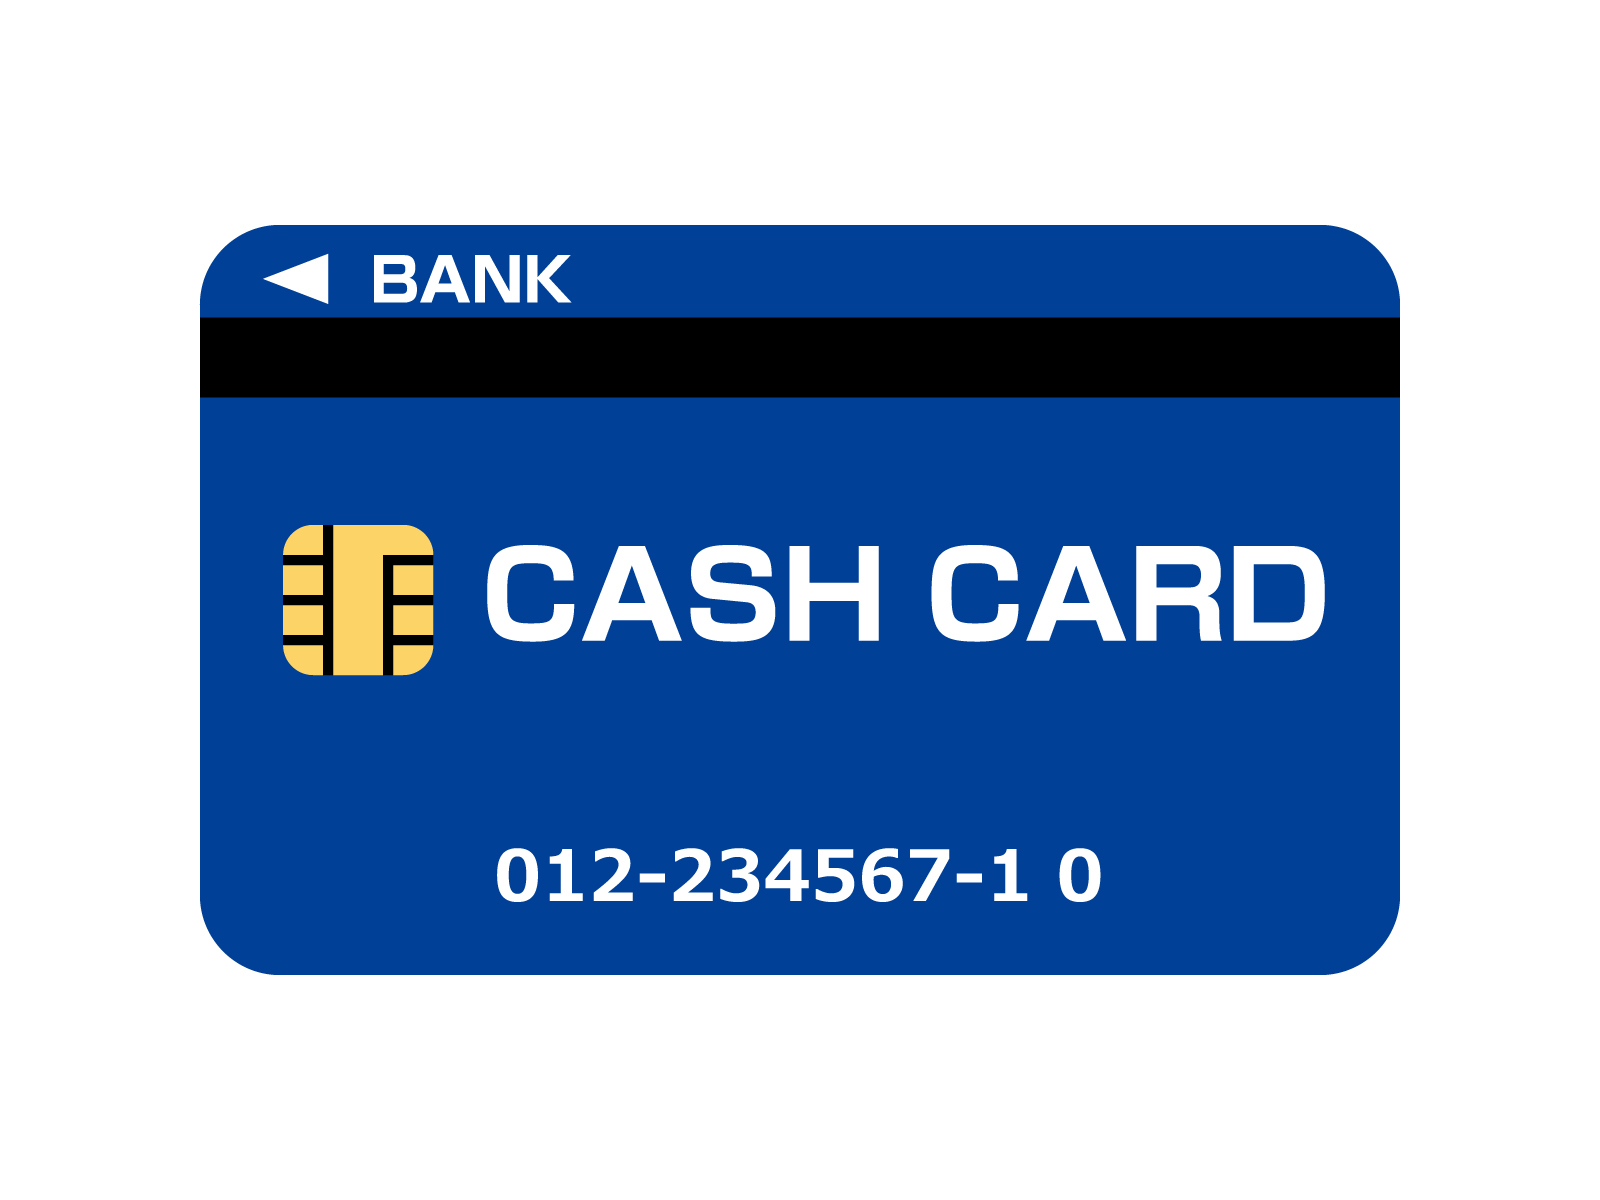 debit_card_bank_cache.jpg